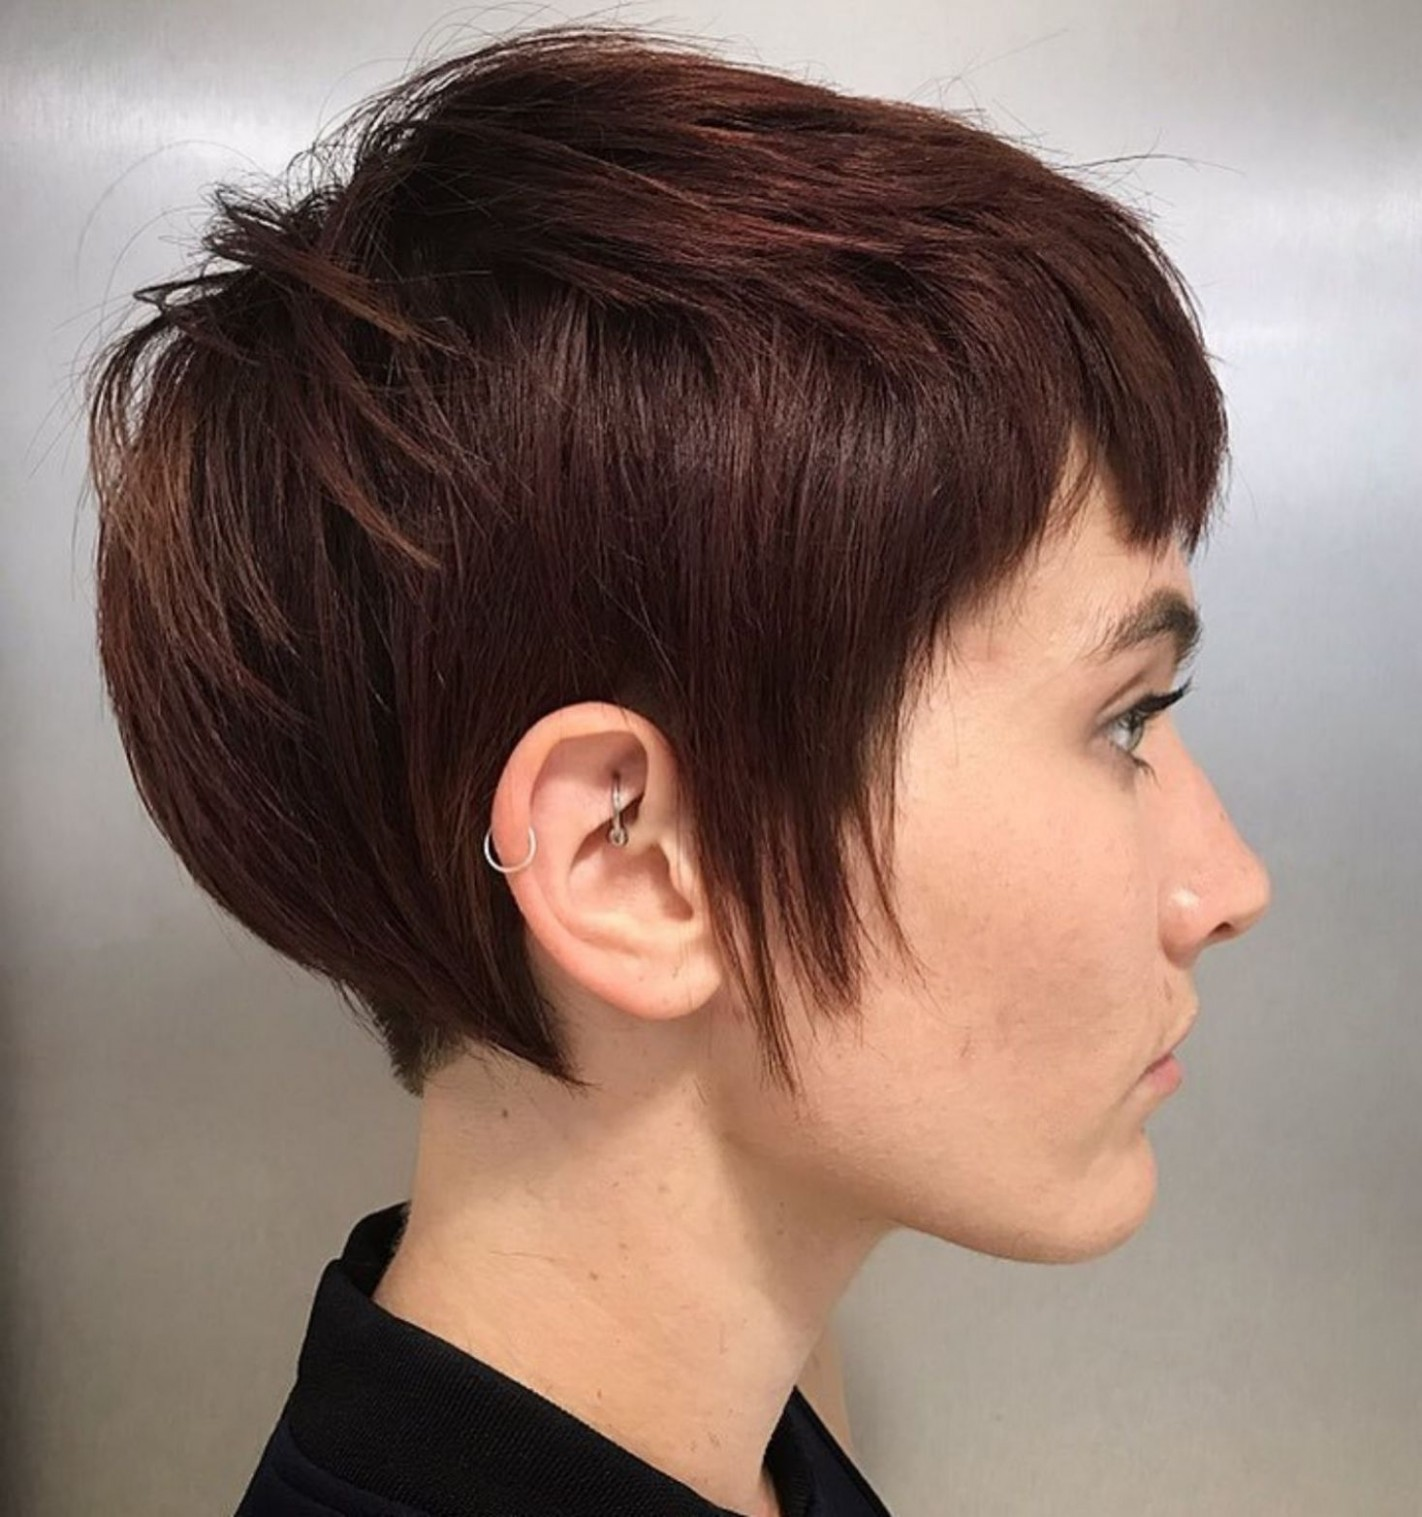 Pixie Haircuts With Bangs 12 Terrific Tapers Haircuts With Auburn Pixie Cut